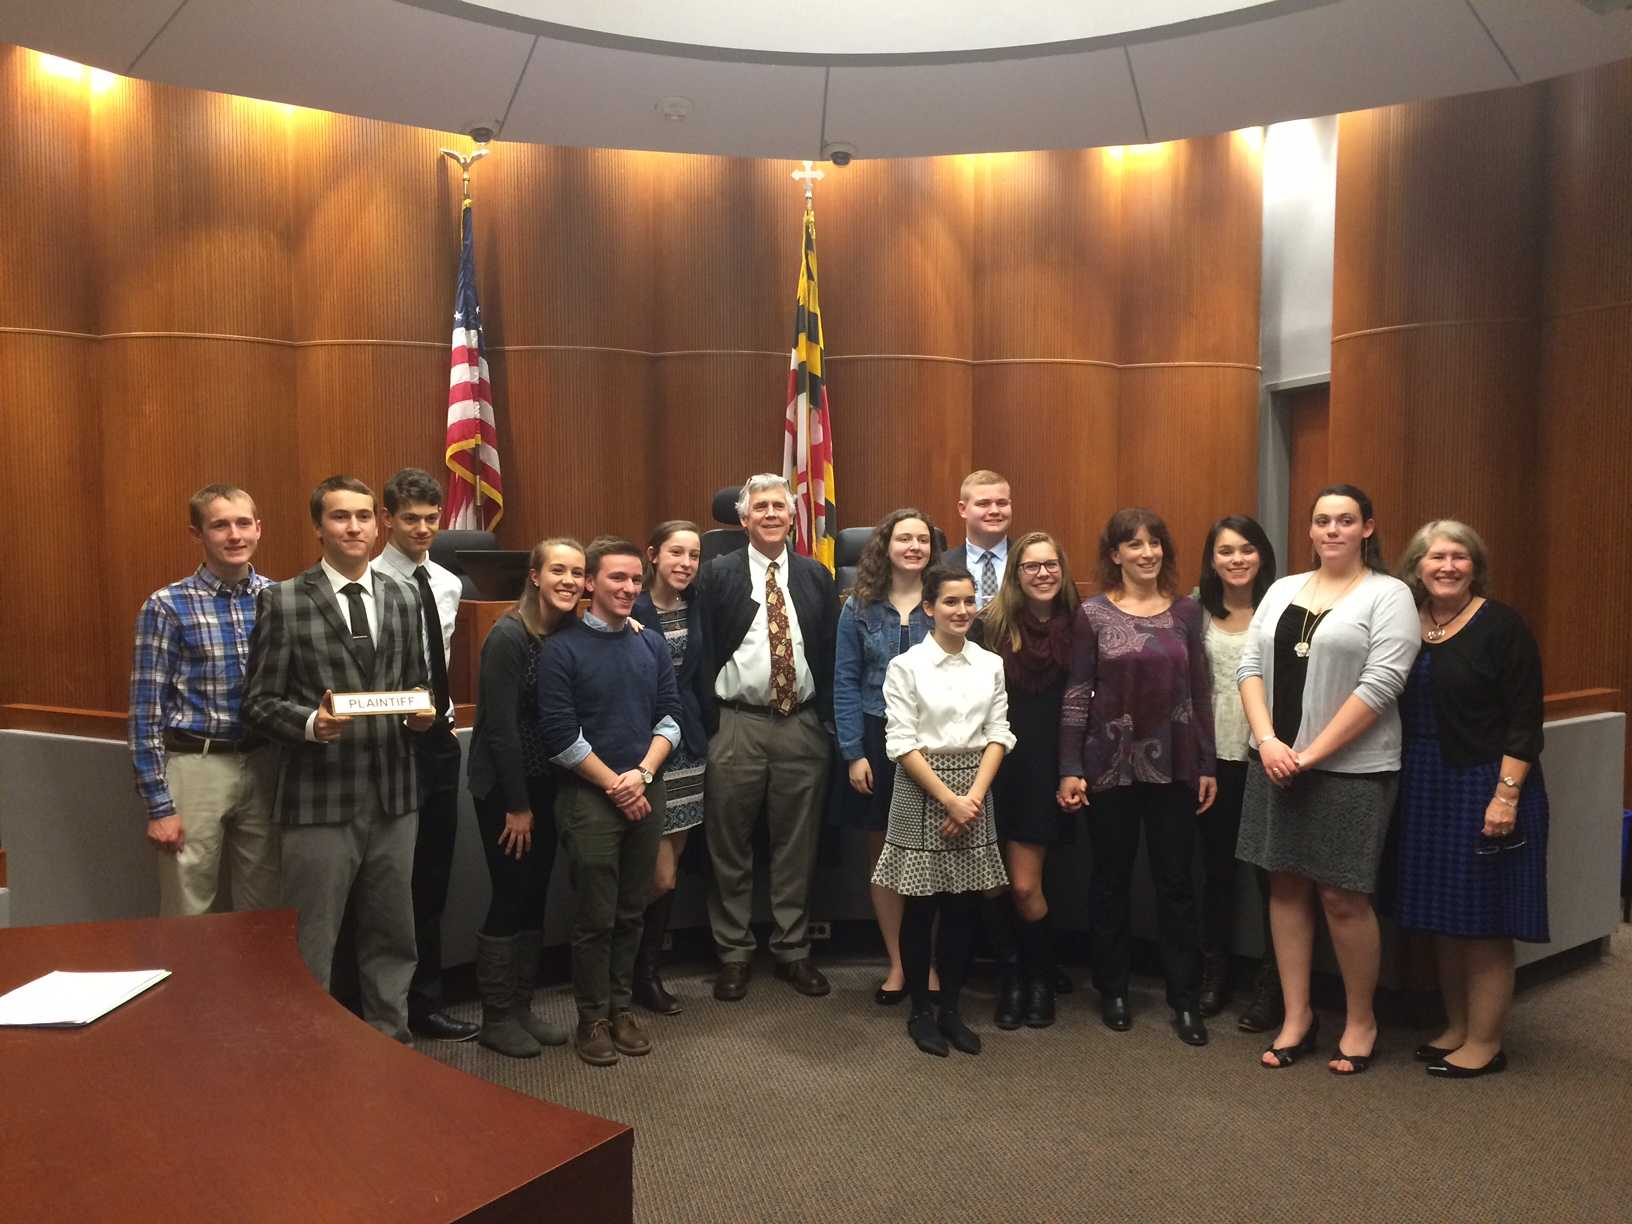 The Mock Trial team poses with their judge after the competition.